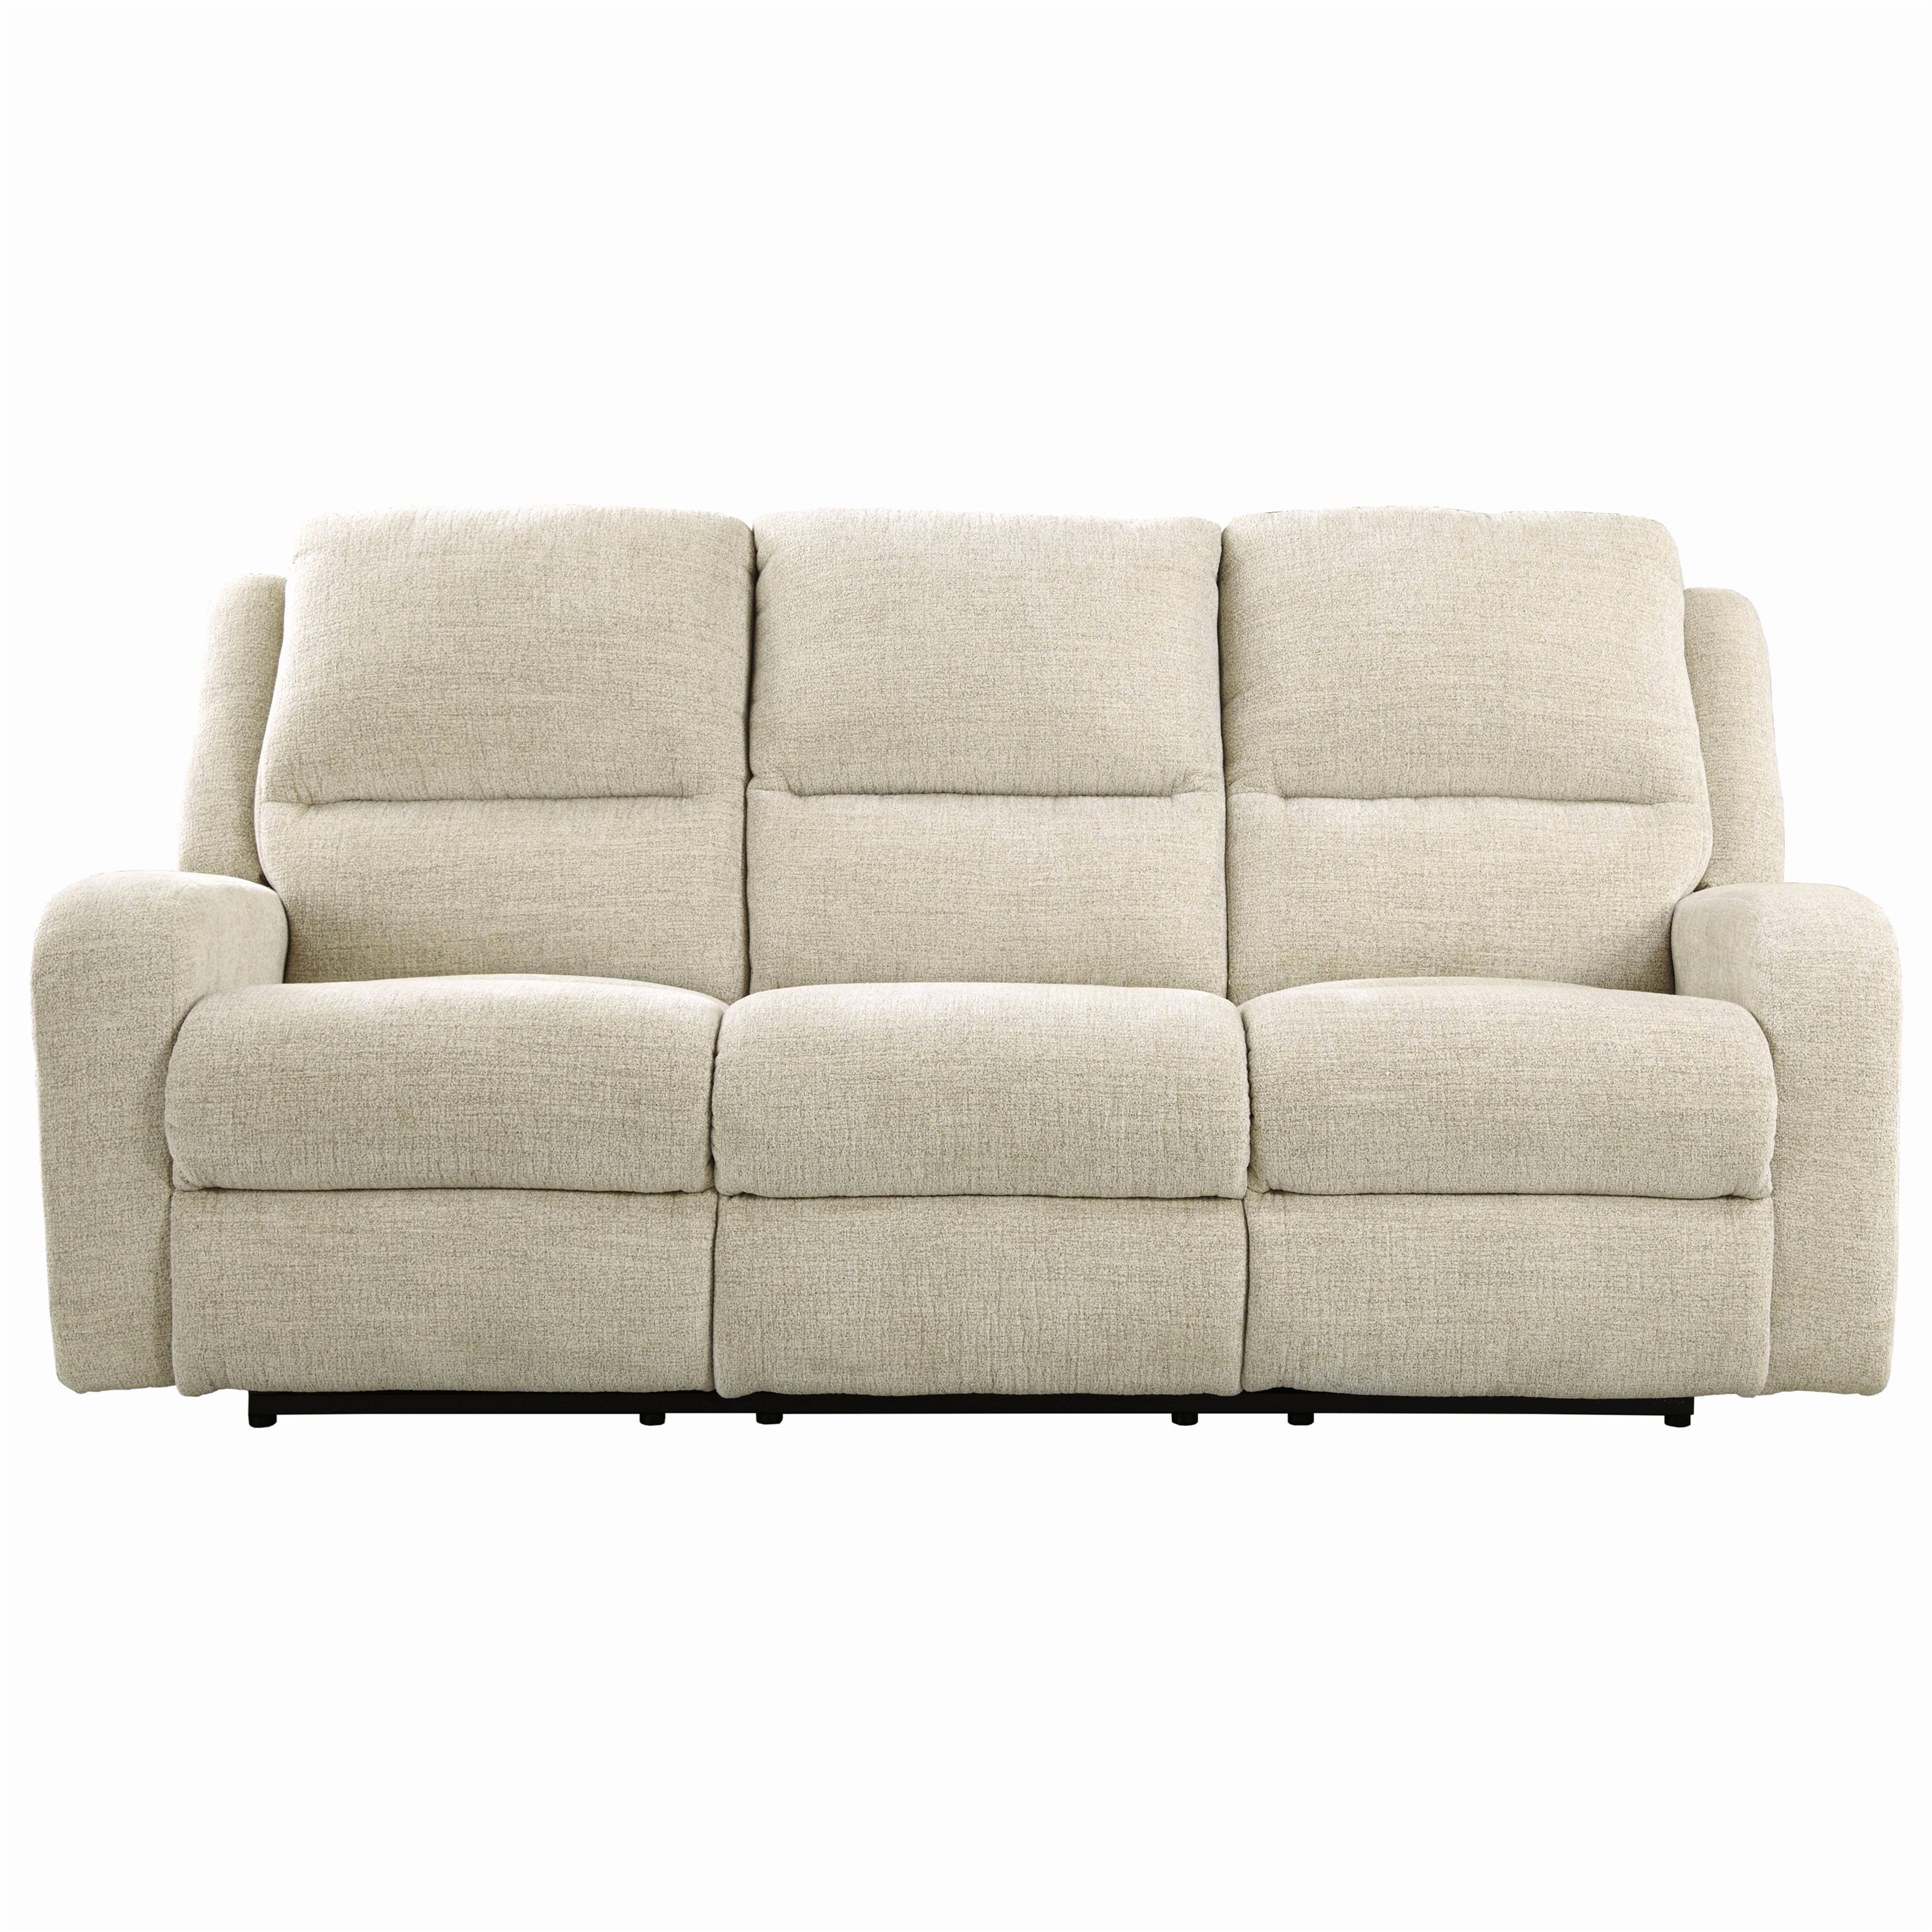 luxury southern motion reclining sofa photo-Amazing southern Motion Reclining sofa Pattern